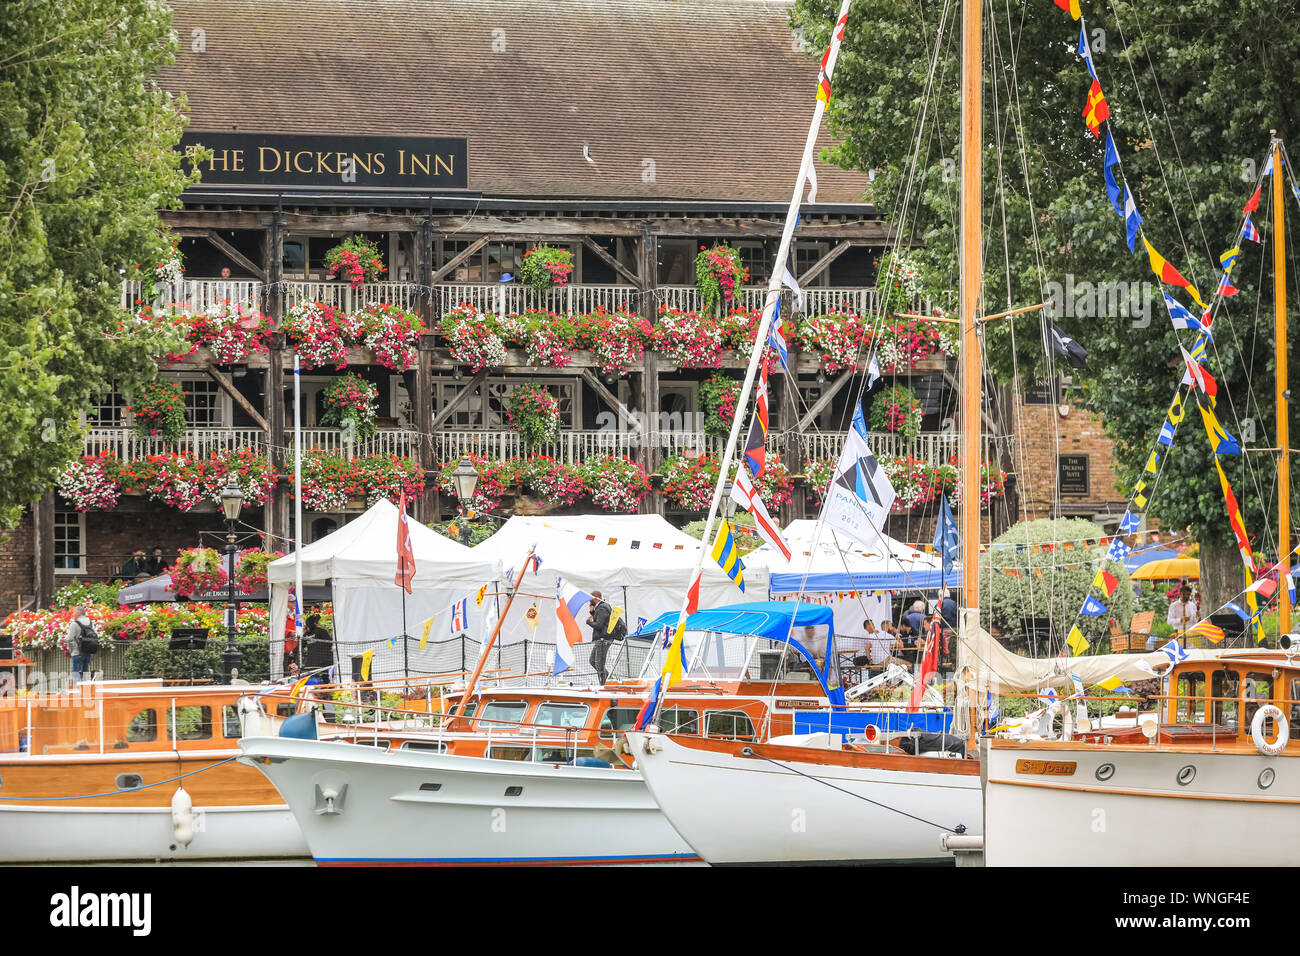 St. Katharine Docks, London, 06th Sep 2019.Classic boats and barges, including the Royal barge Gloriana, decorated smaller vessels and water craft are moored in St. Katharine Docks for the annual Classic Boat Festival. The free festival also features food and drink stalls, stages, bands and free paddle boarding and other activities, and is on for three days until Sunday 8th September. Credit: Imageplotter/Alamy Live News Credit: Imageplotter/Alamy Live News Stock Photo